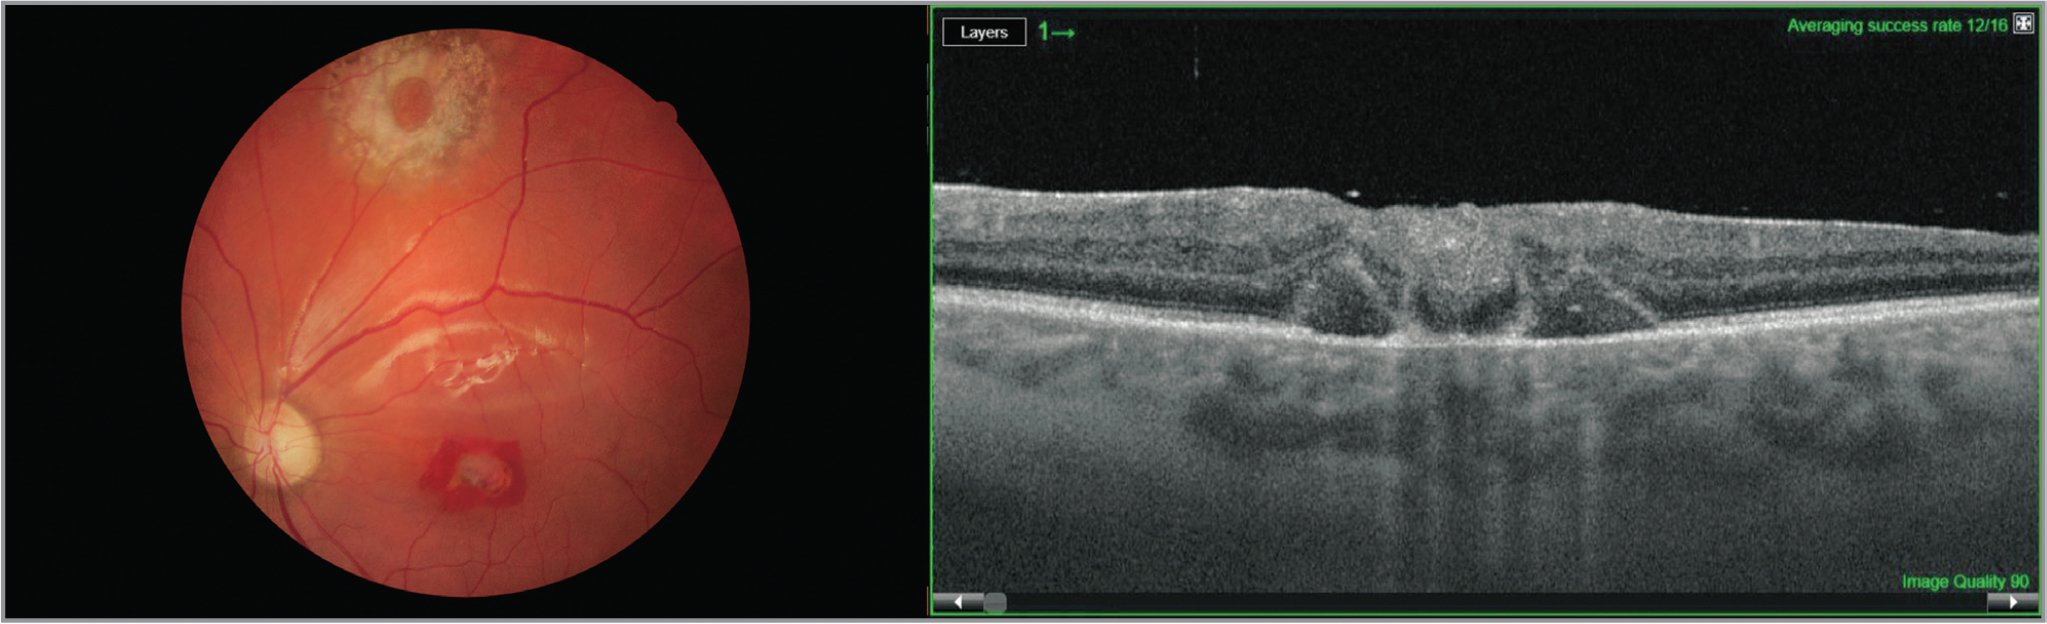 (Left) Native fundus photo with closed macular hole and harvested site; at 1-month follow-up with best-corrected visual acuity (BCVA) of 20/60. Silicone oil tamponade. (Right) Optical coherence tomography scan at 1-month follow-up with BCVA 20/60. Silicone oil tamponade.